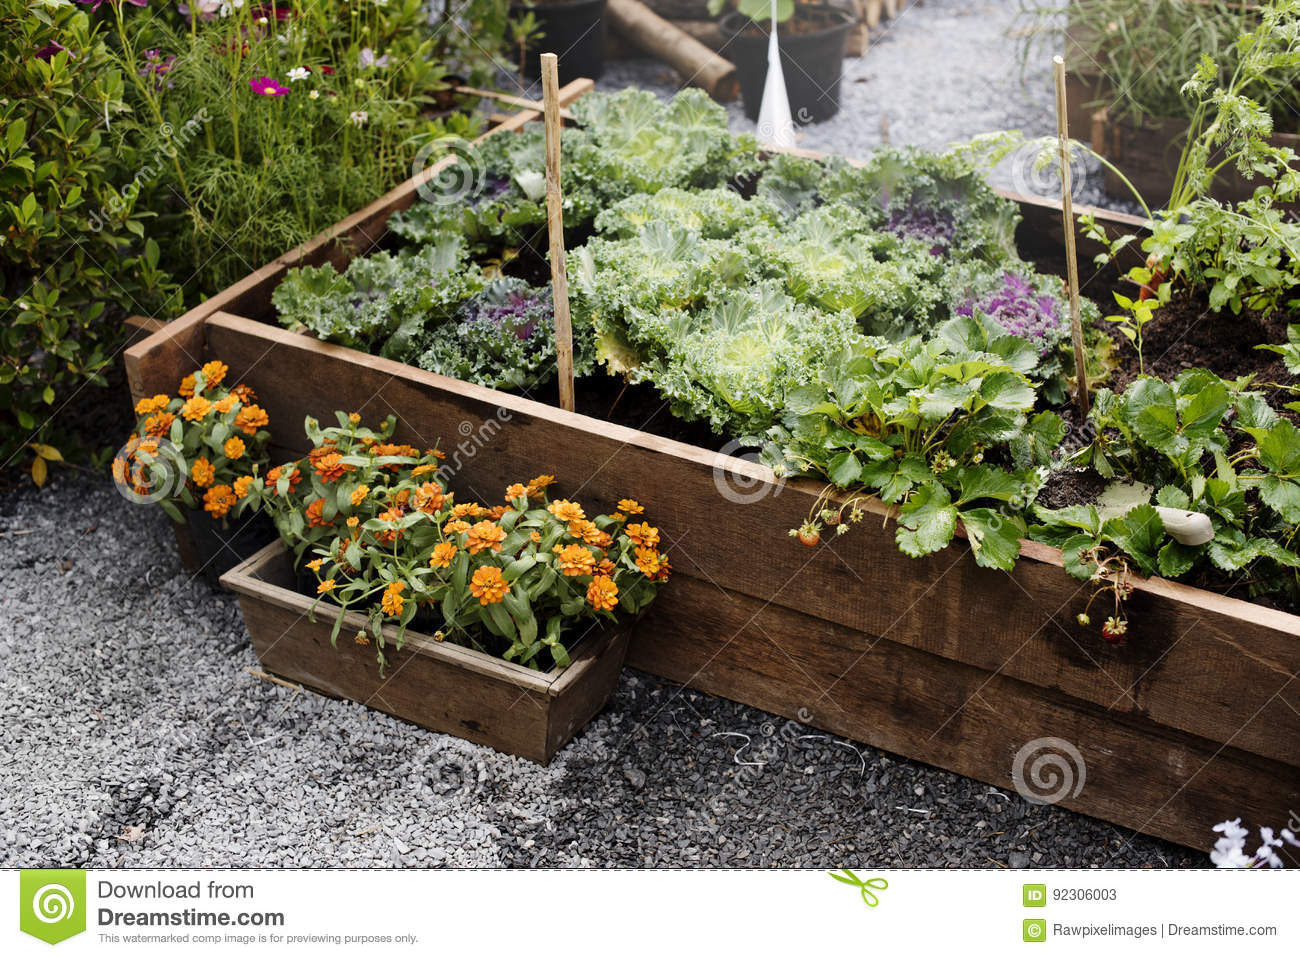 Green Garden Farming Vegetable Plants Stock Image - Image of growth ...